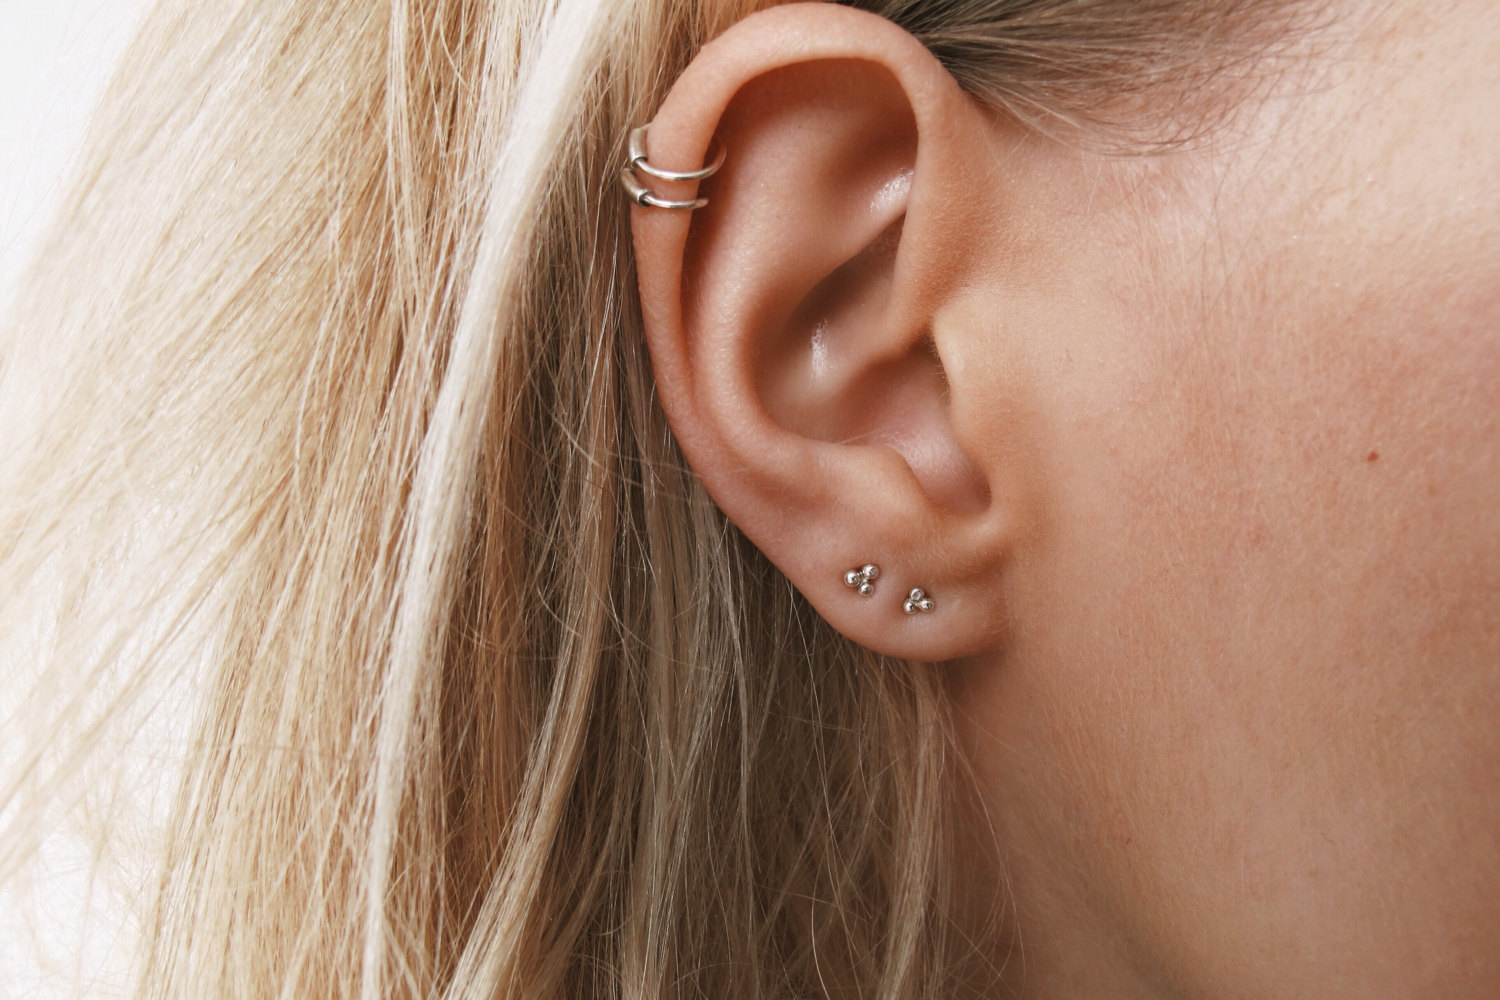 Cartilage piercing